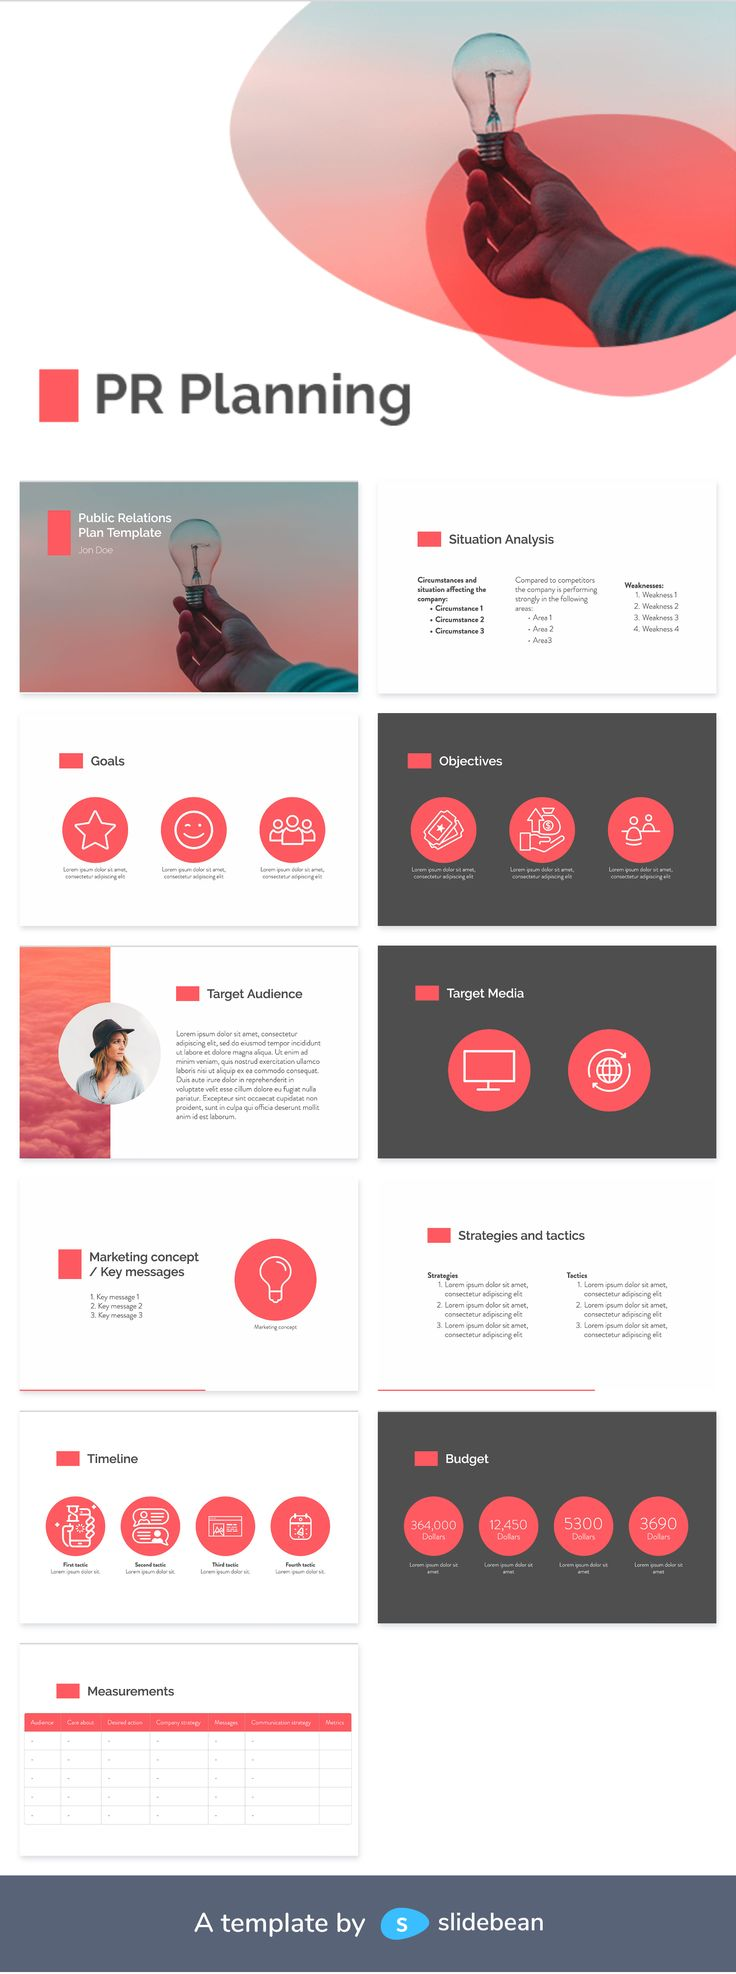 PR Planning Template Public relations, Templates